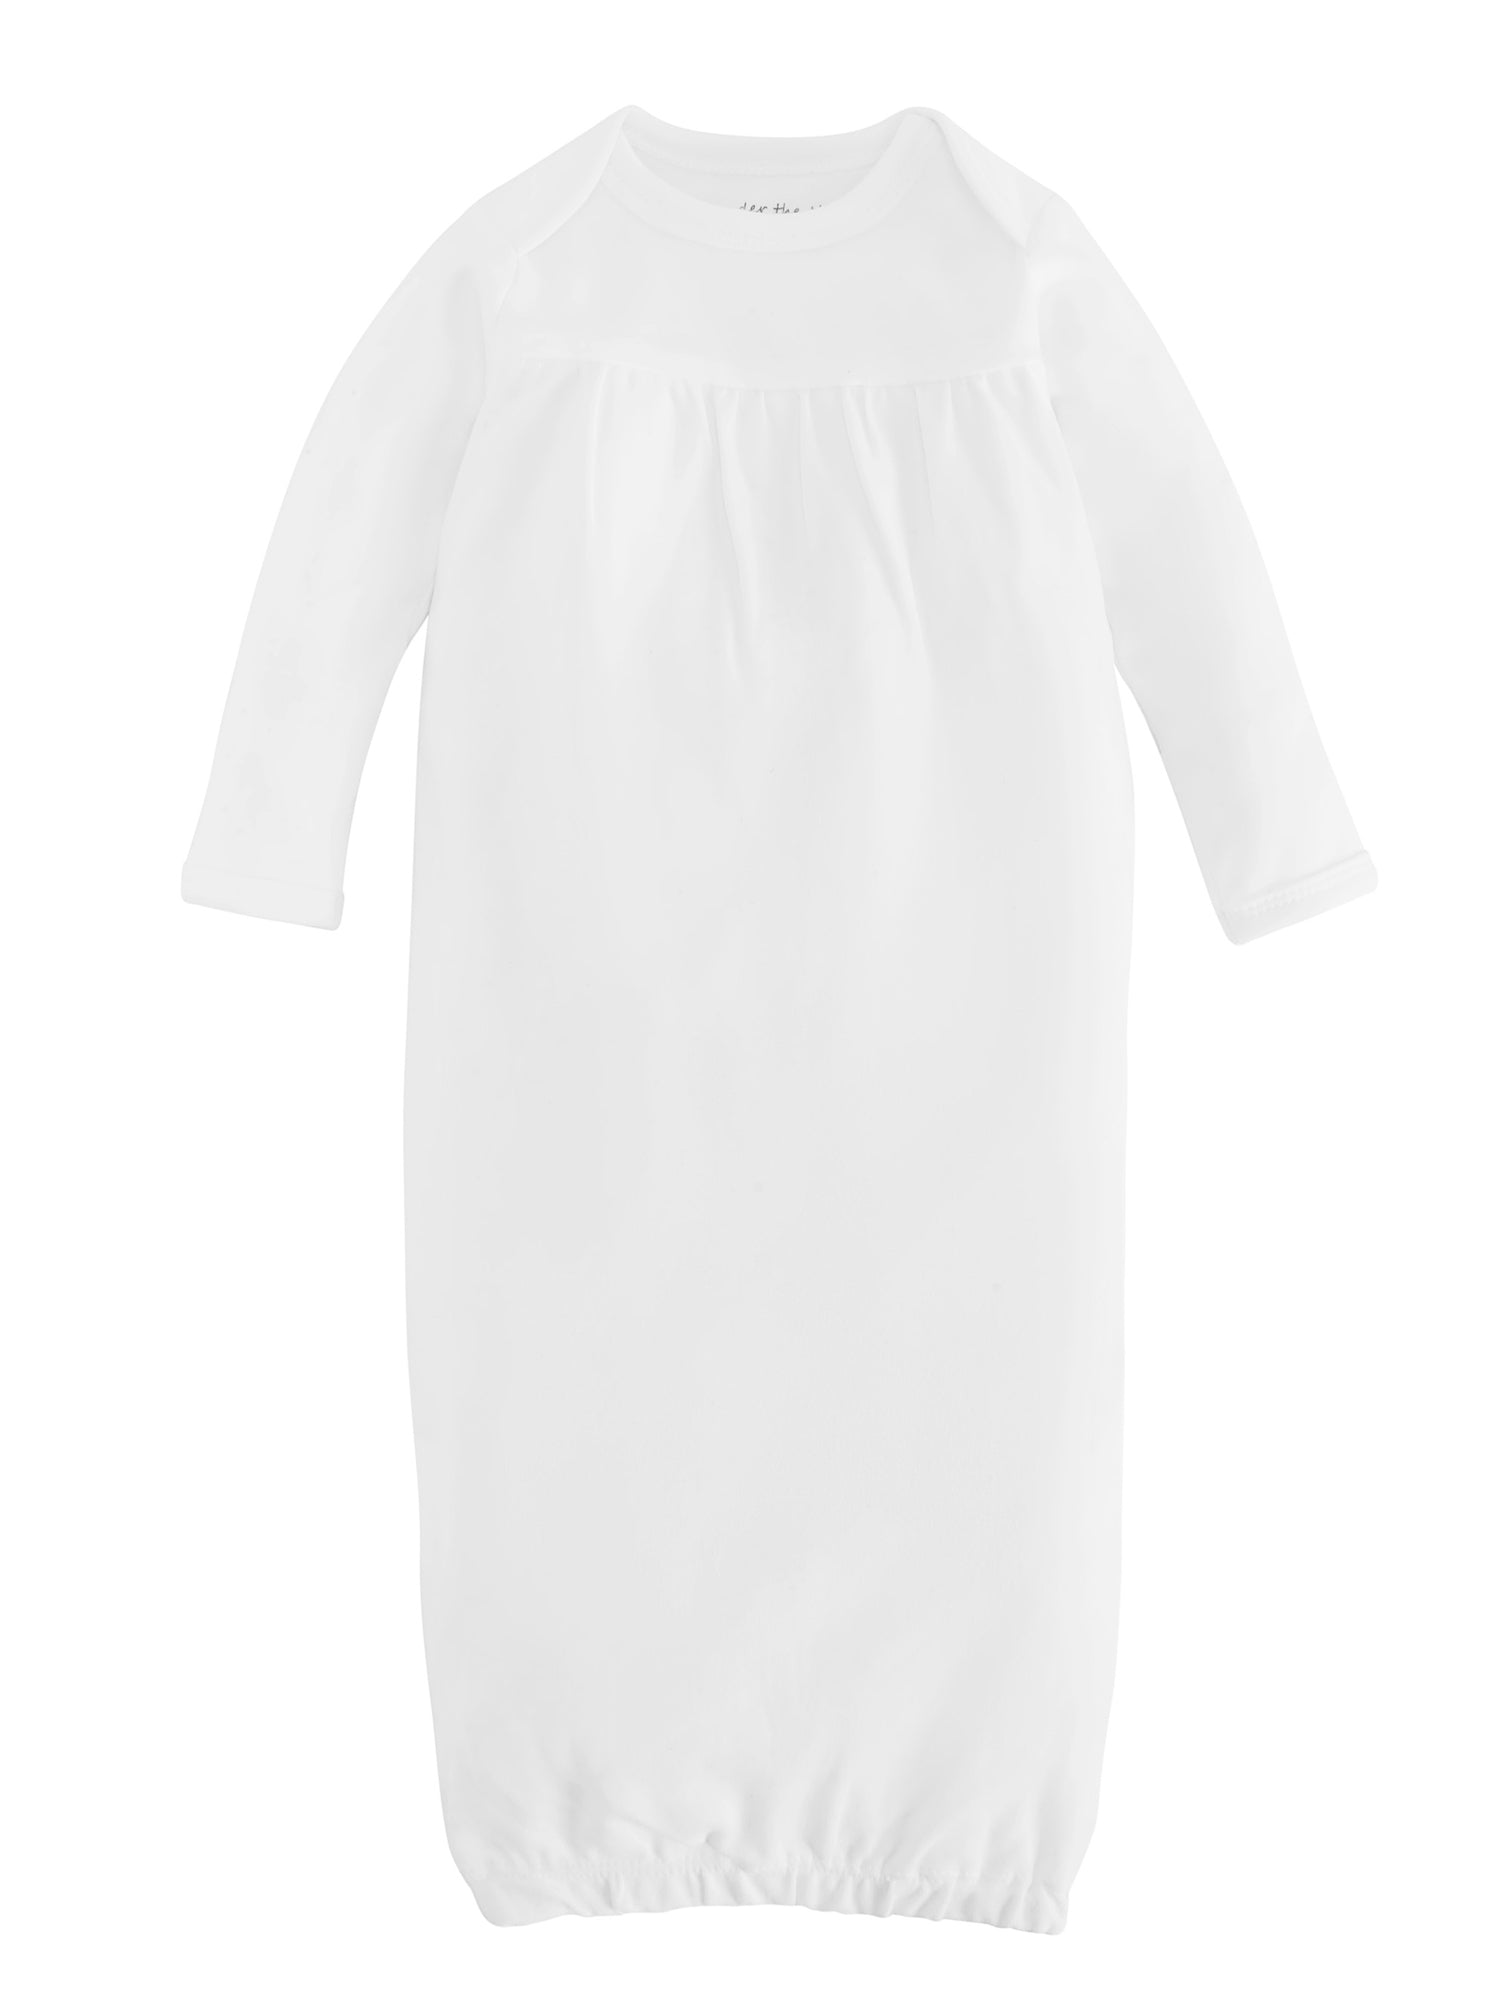 Organic Cotton Unisex Off White Baby Gown Size 0 3m